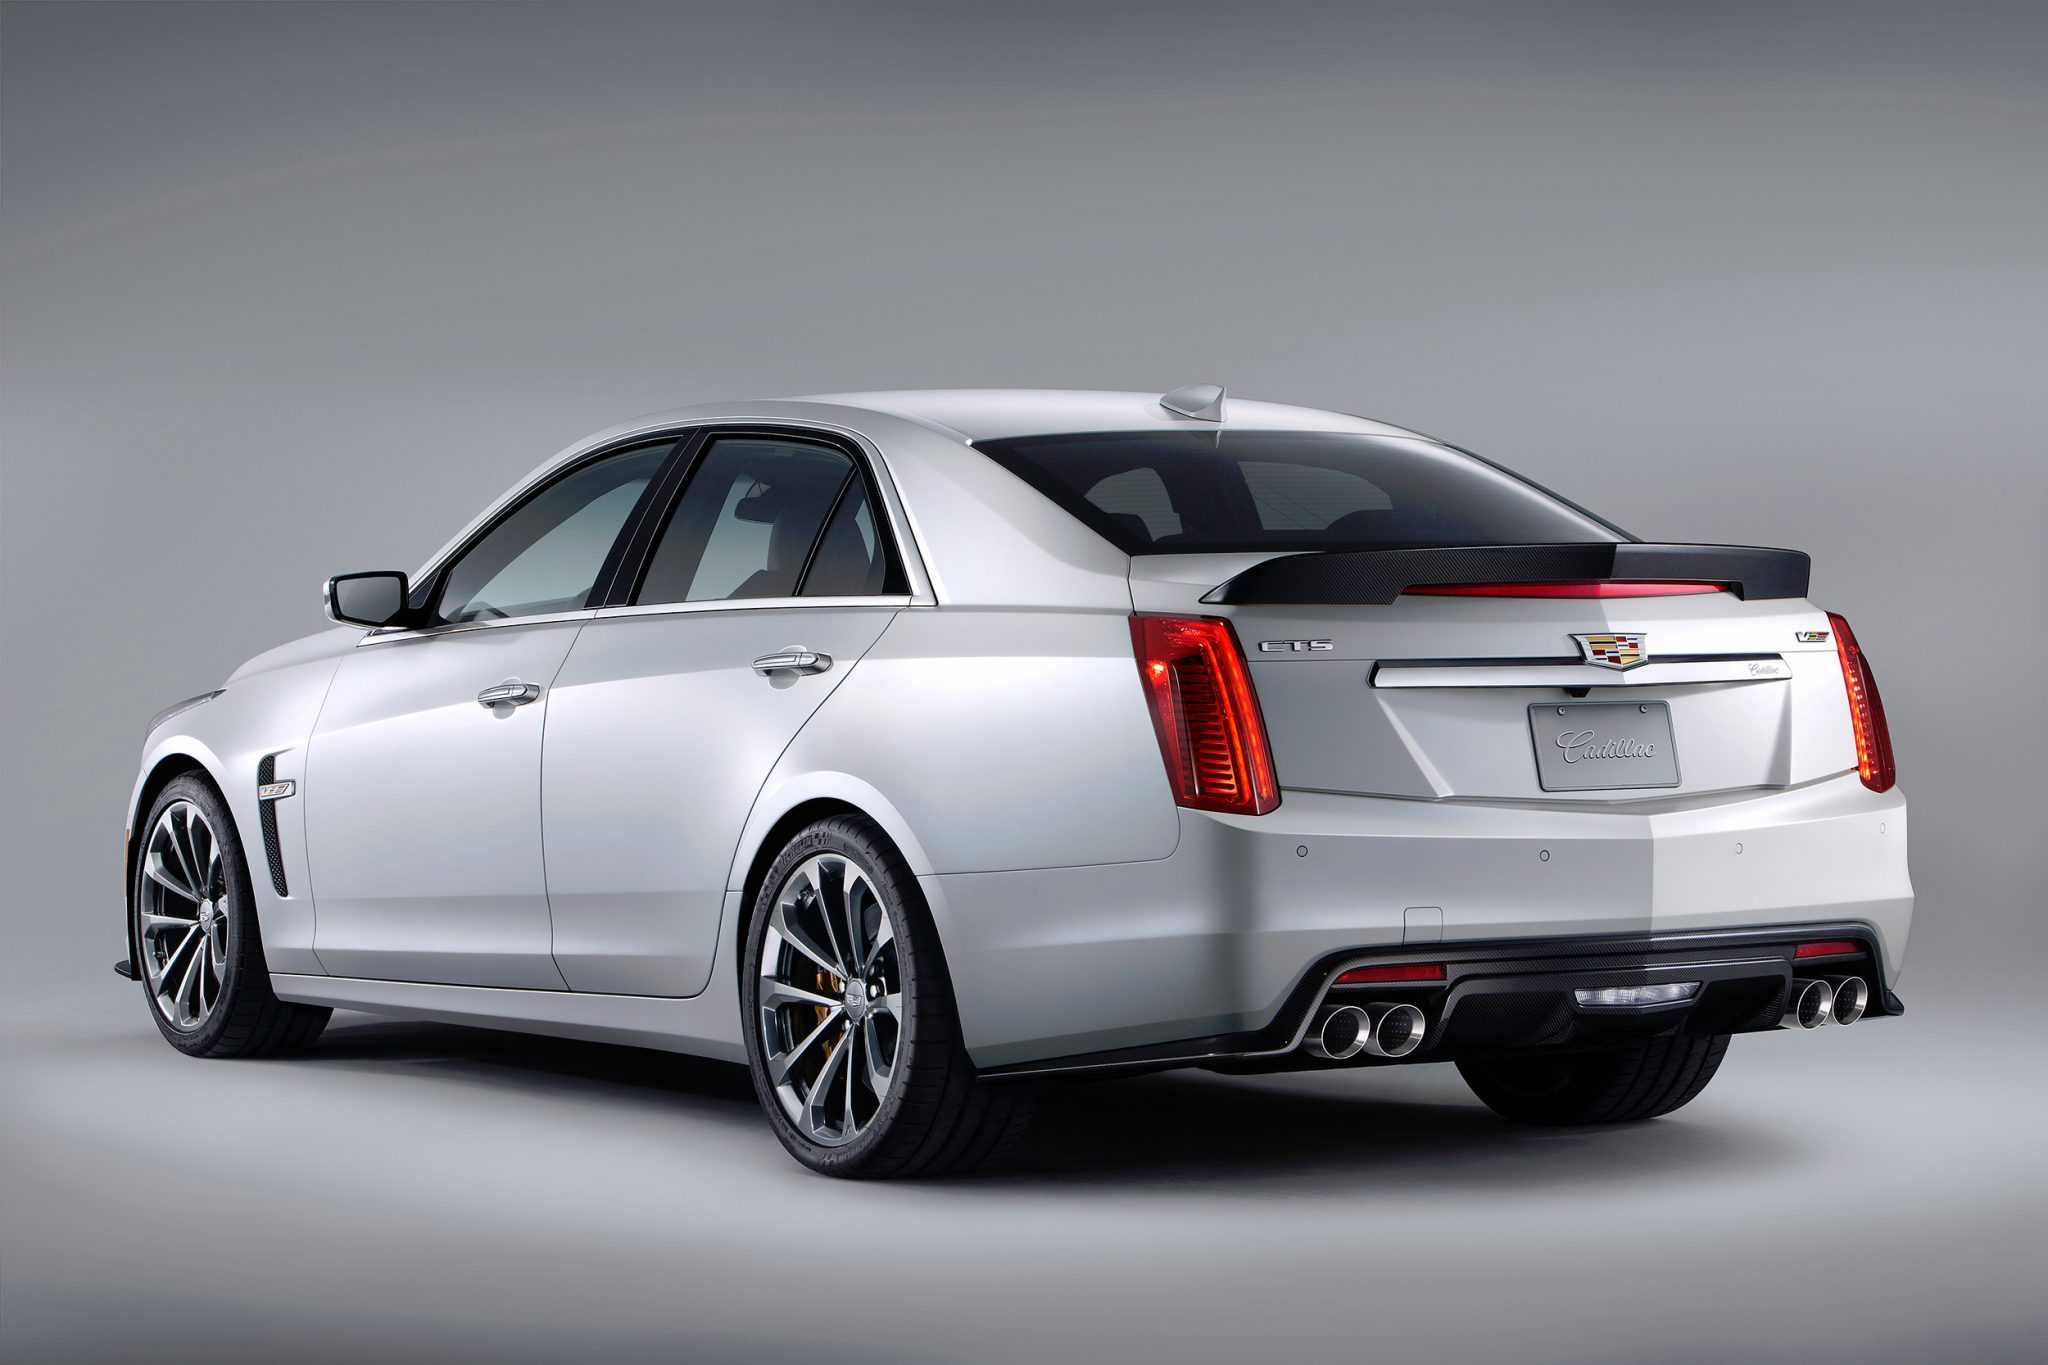 2016 cadillac boosts fuel efficiency in cts and ats models with new engine. Black Bedroom Furniture Sets. Home Design Ideas